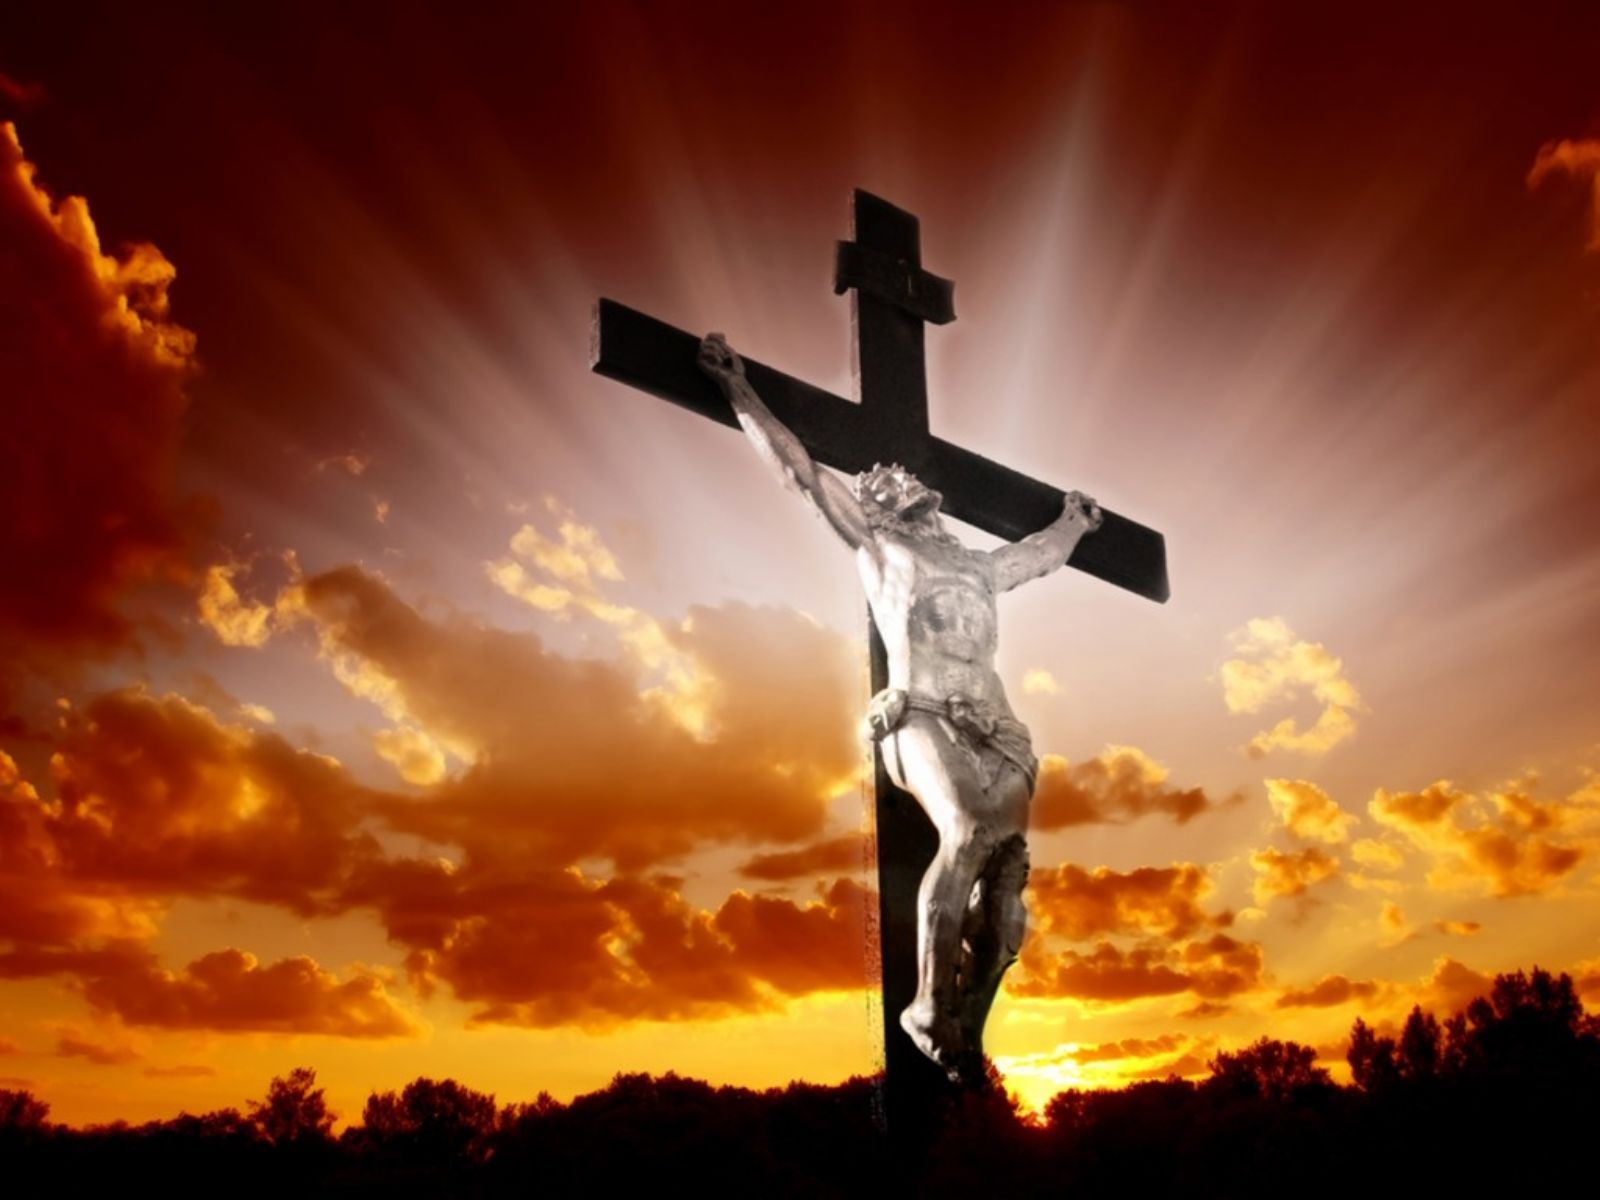 http://4.bp.blogspot.com/-eznxA7SLVSk/TZntdCJCIzI/AAAAAAAAB_I/loPHR66fpHY/s1600/Christian_cross_with_Jesus_Christ_in_beautiful_sunrise.jpg